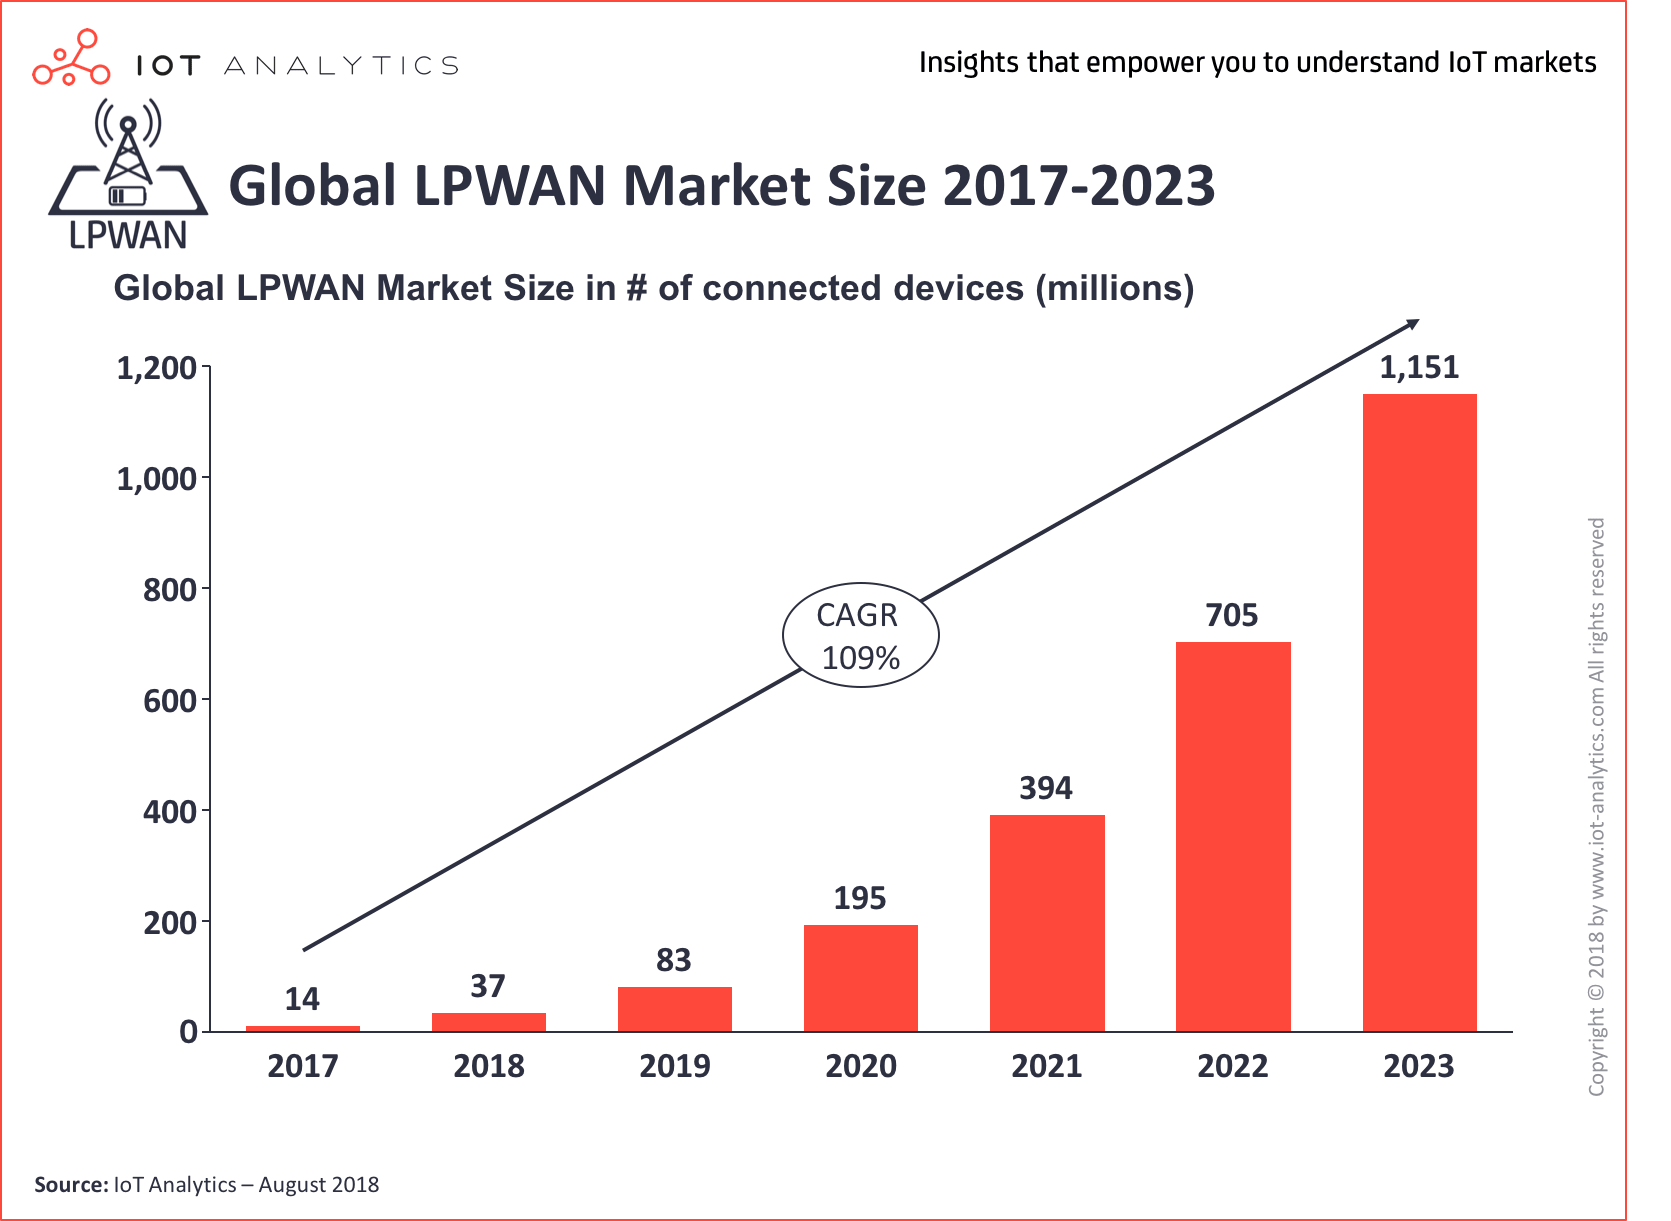 Global LPWAN Market Size 2018-2023